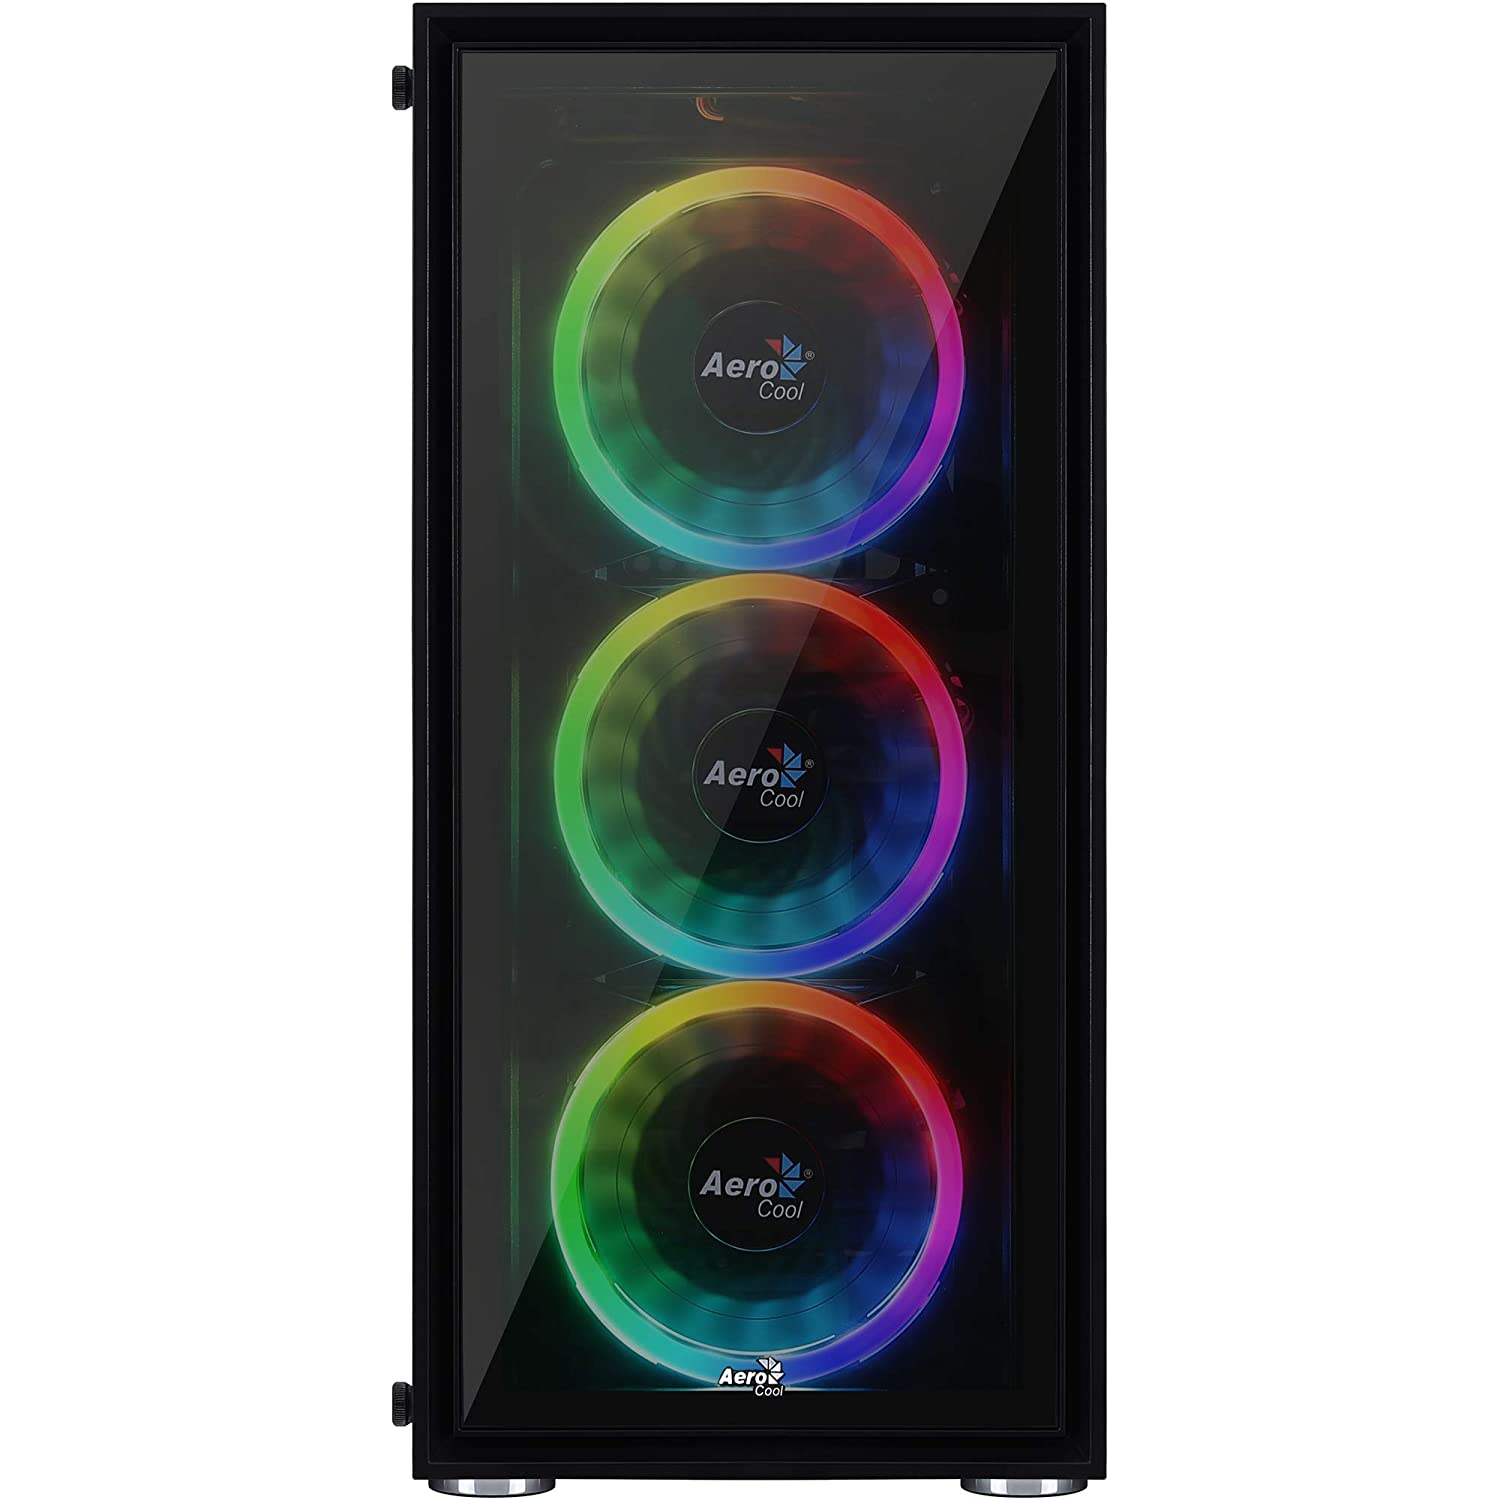 AeroCool V3X Pc Gaming Case 1 x 80Mm Fan Included For High-End Graphics and Gaming Black Window R gb Lighting Mid-Tower Atx